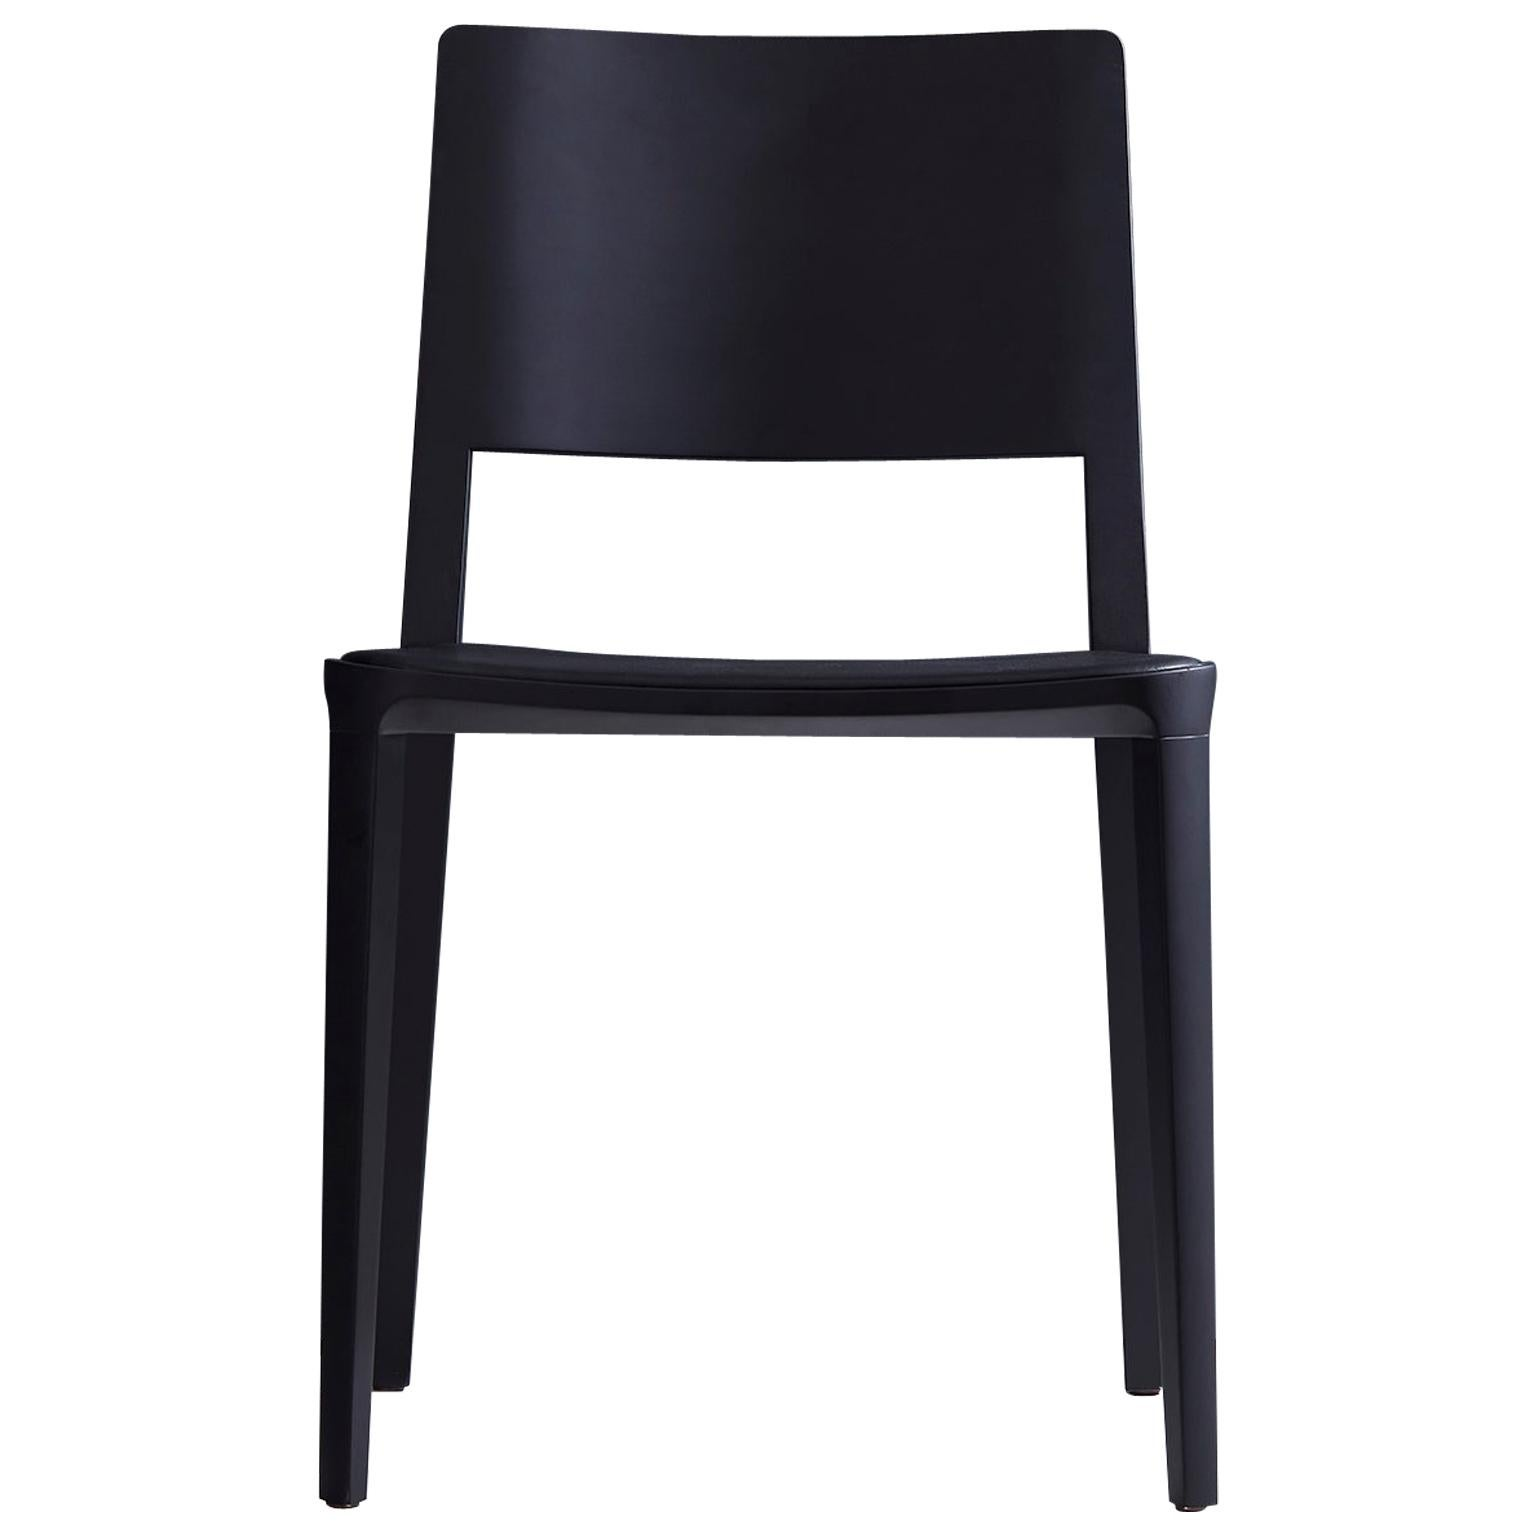 Minimalist Modern Chair in Solid Wood Solid Black Finish, Leather Seating